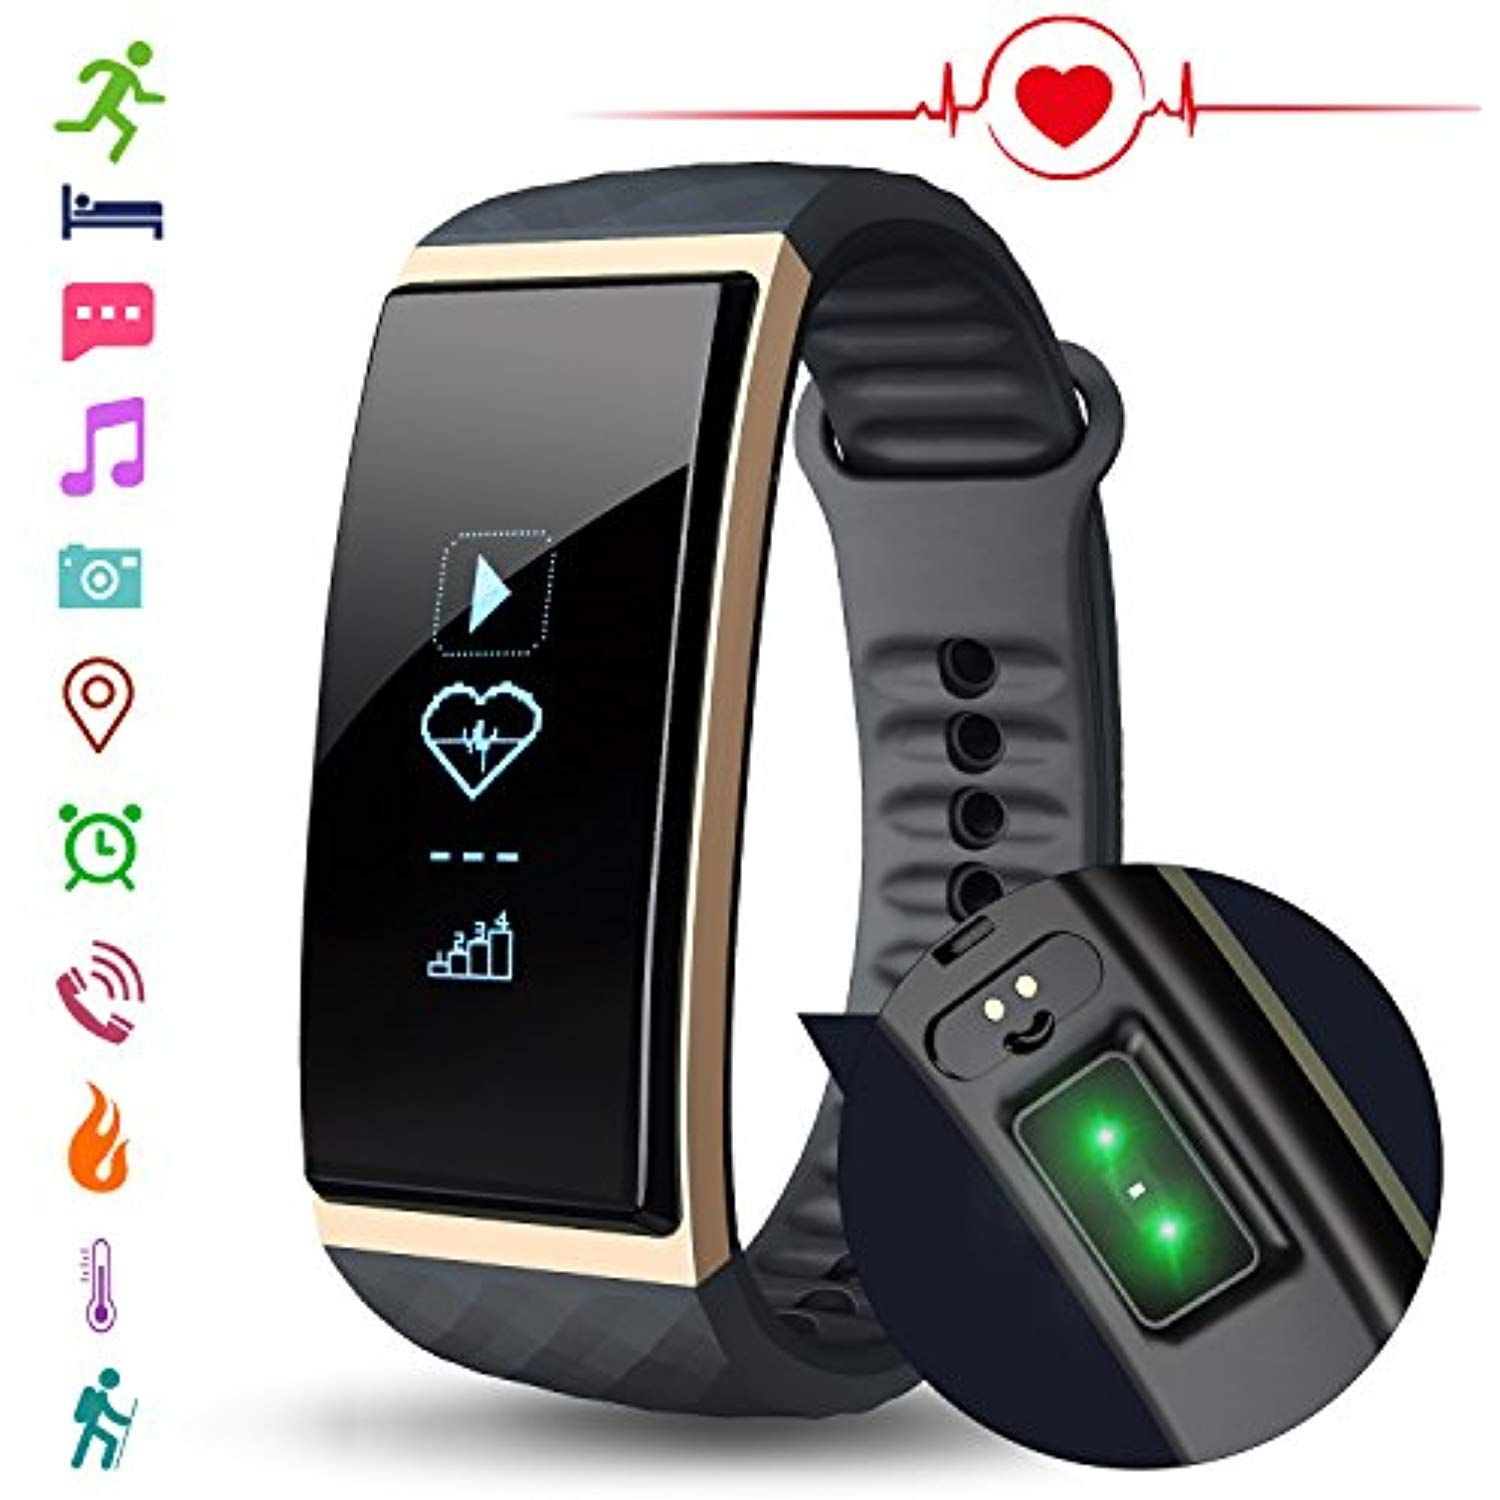 Fitness tracker watch with heart rate monitor cubot s1